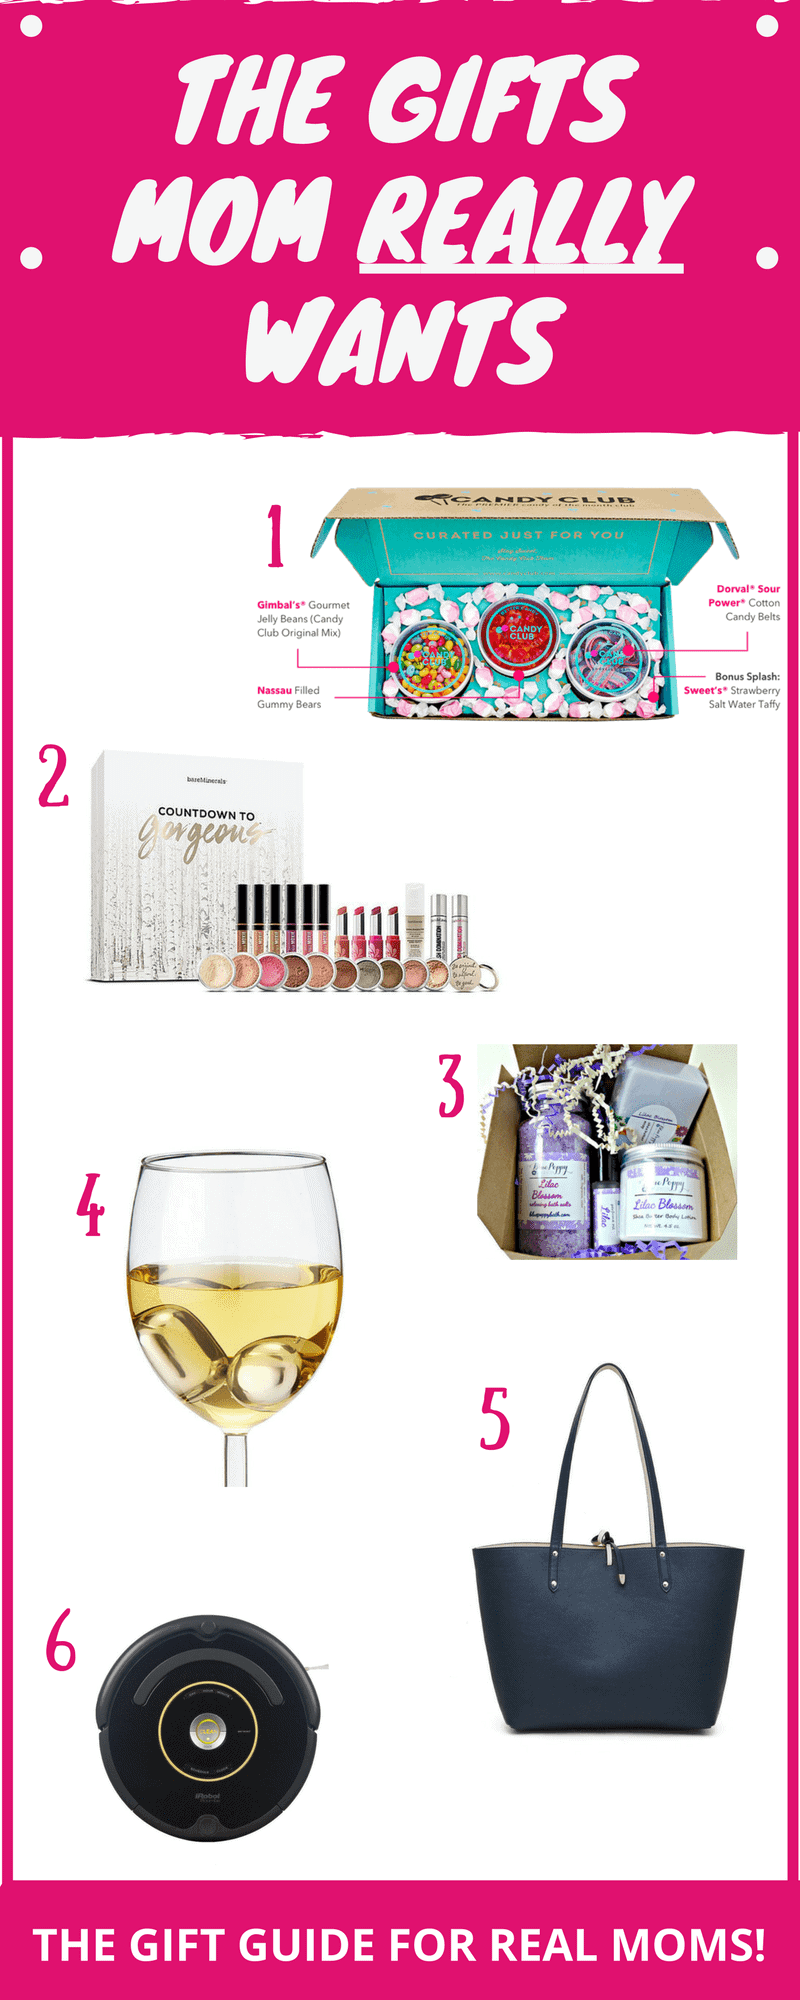 Gifts for Moms! Here's a gift guide for REAL moms! Get mom want she really wants!